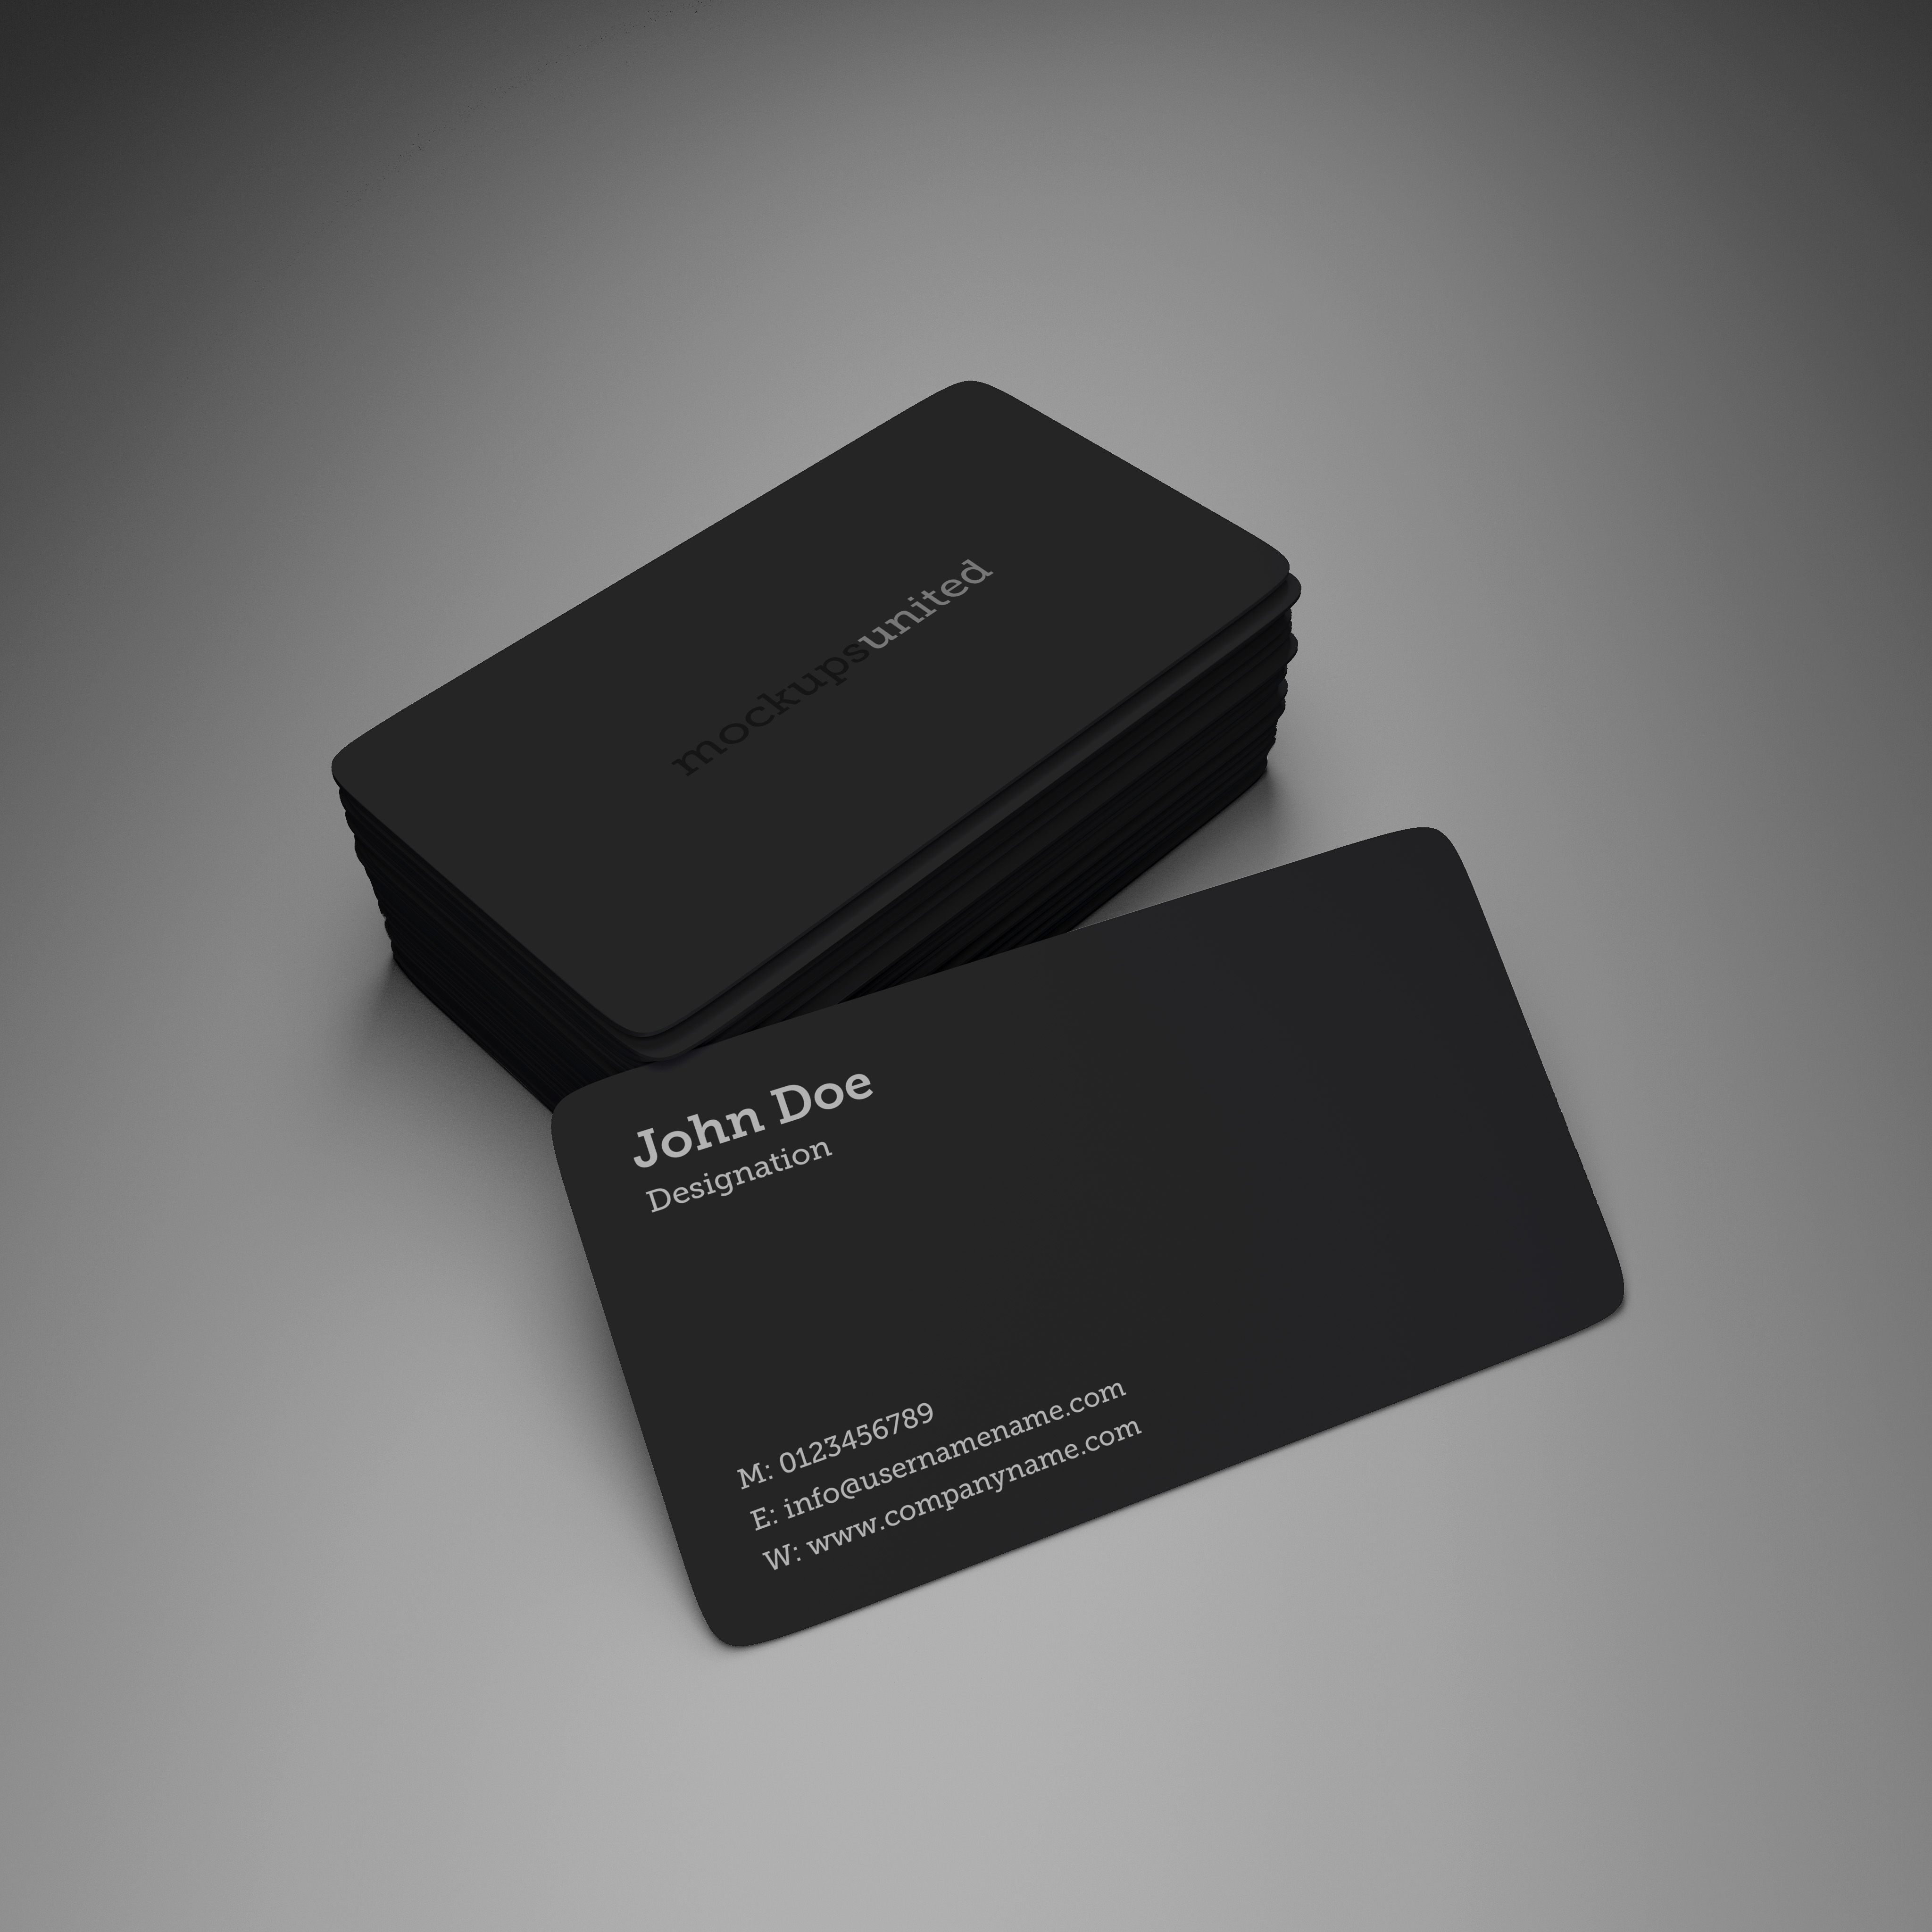 rounded corner business card mockup product design